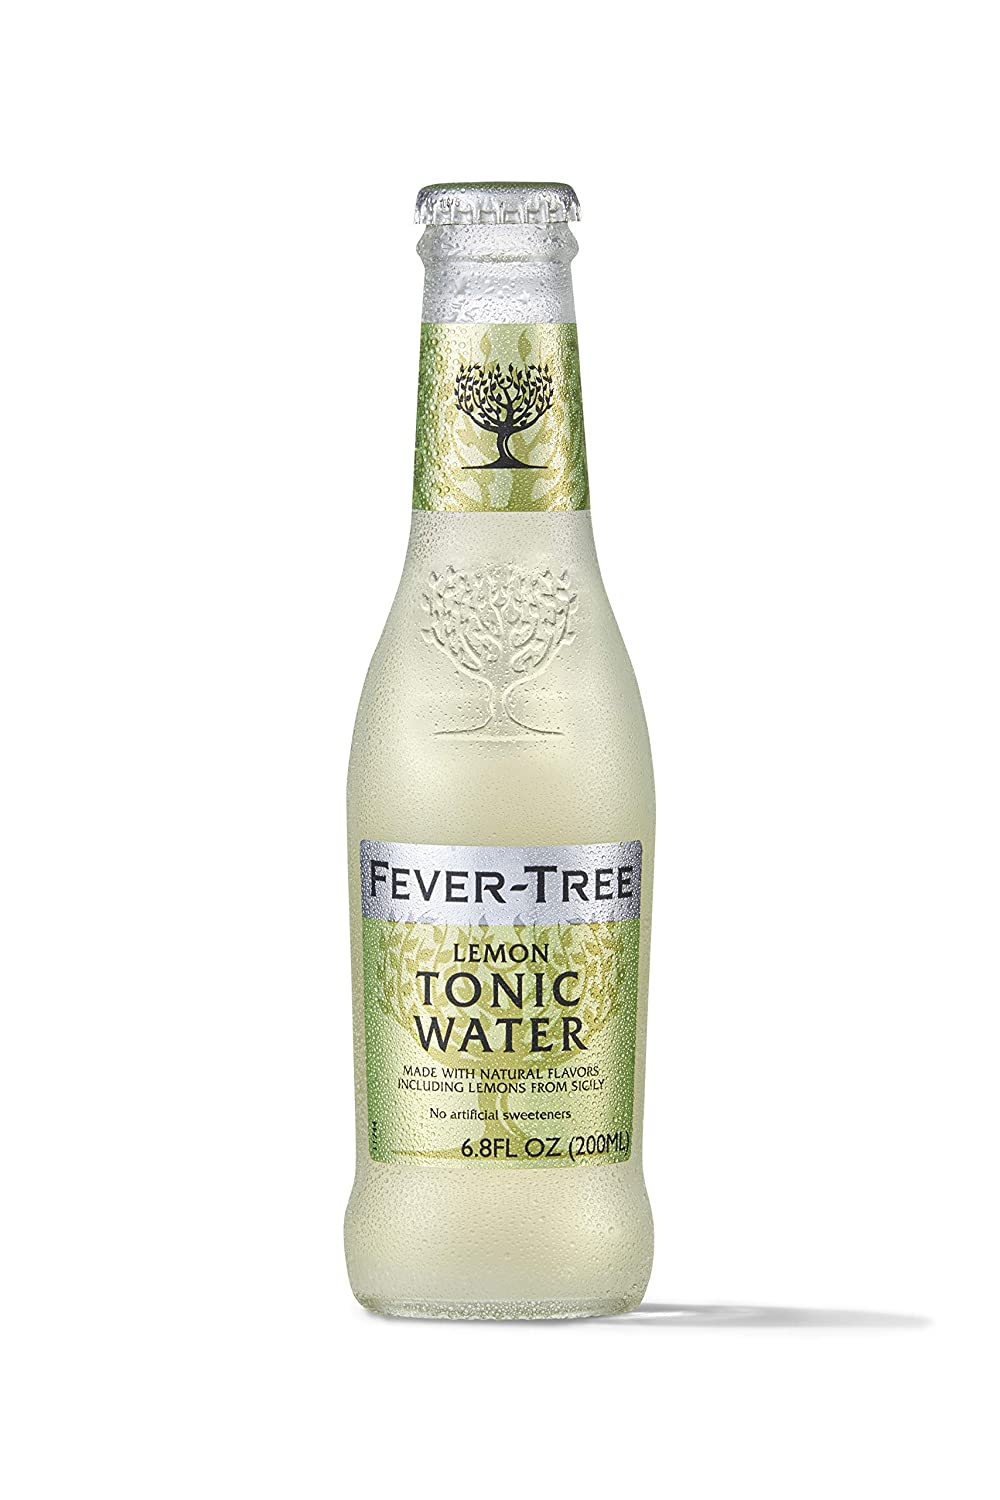 Fever-Tree Premium Sparkling Lemon Drink Glass Bottles, No Artificial Sweeteners, Flavorings & Preservatives, 6.8 Fl Oz (Pack of 24)